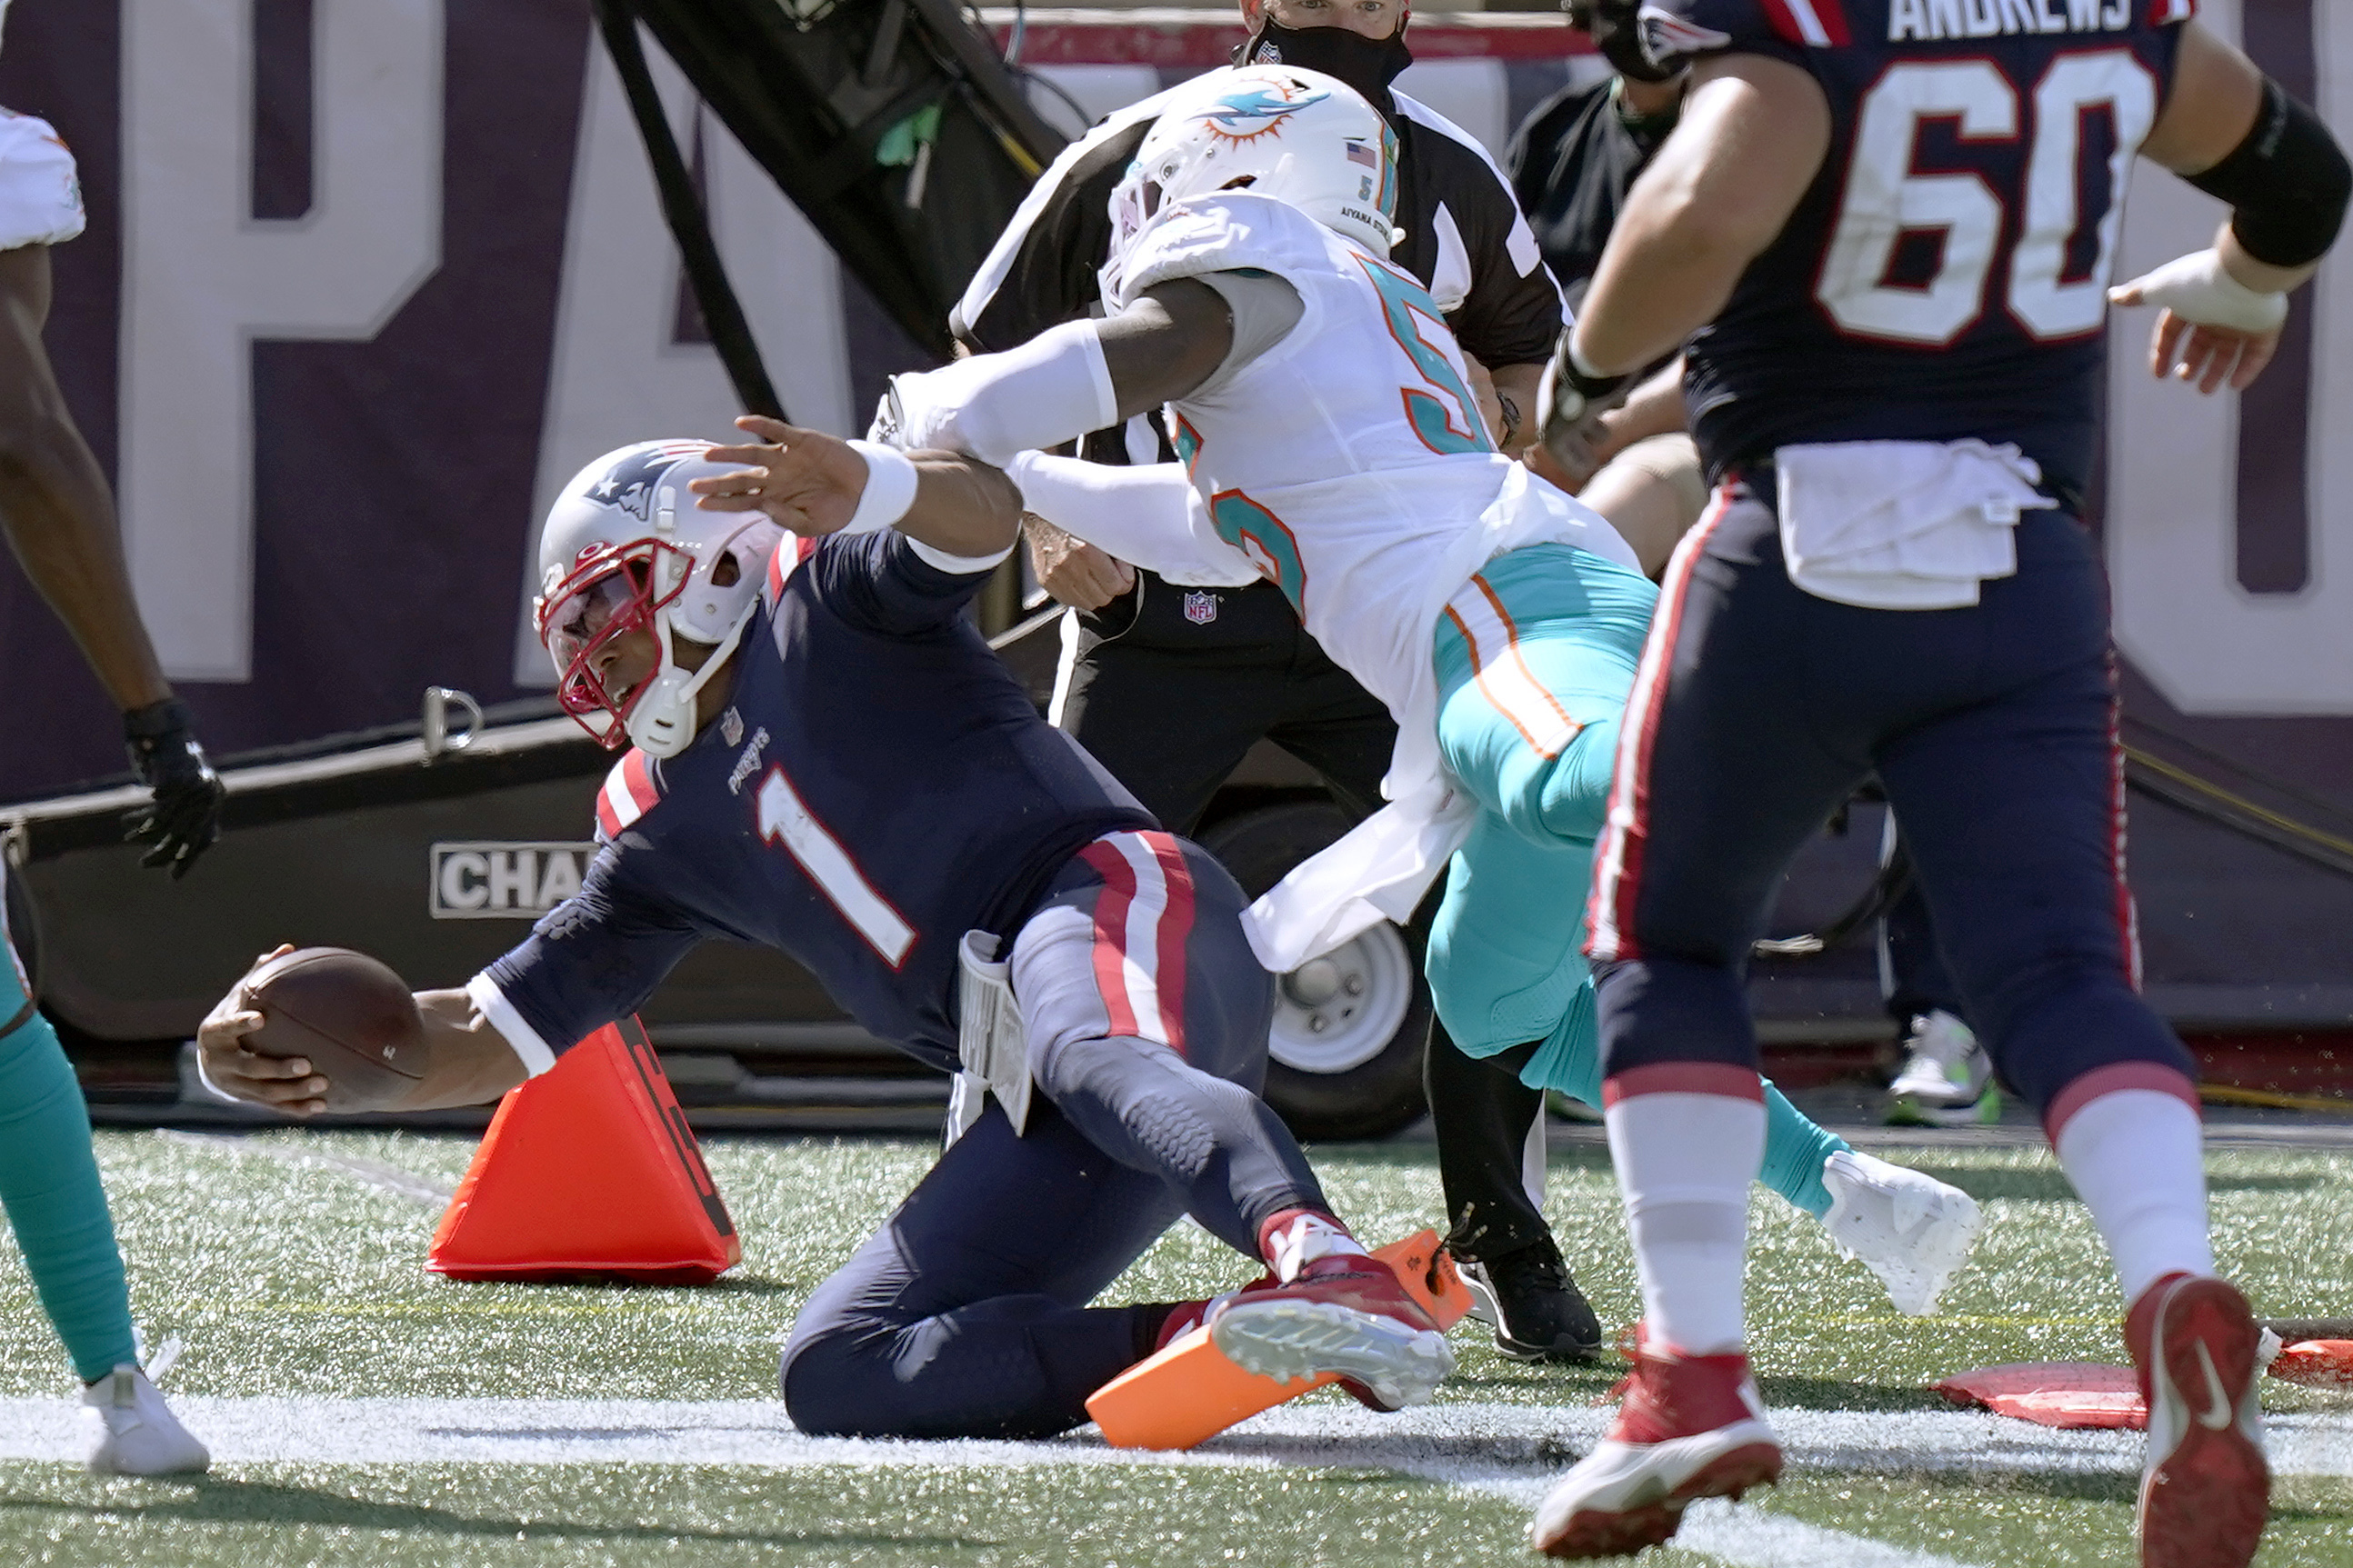 Cam Newton's debut begins with a rush as Patriots run over Dolphins, 21-11  - The Boston Globe